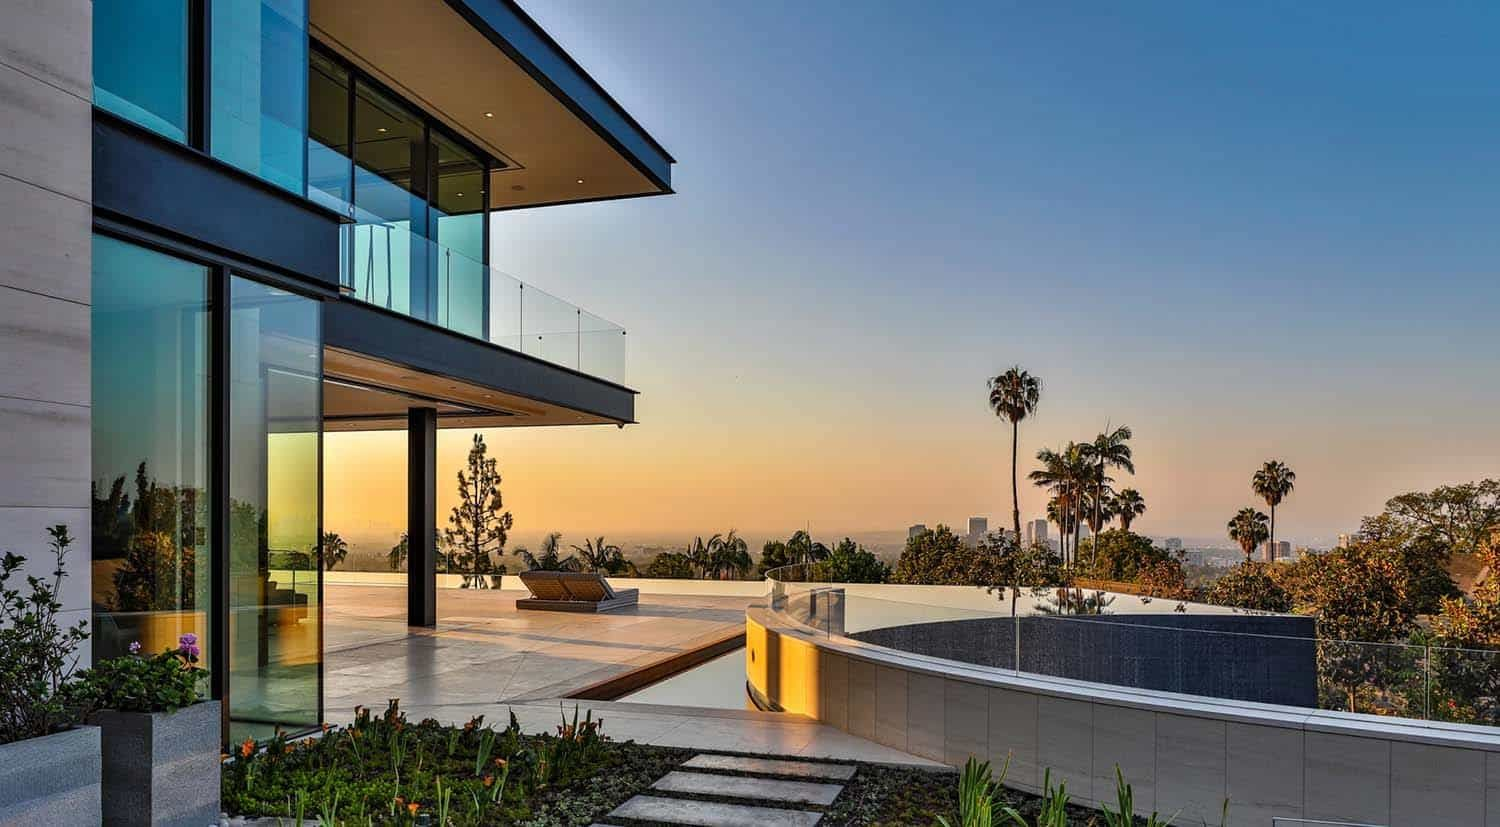 Jaw Dropping Dream Home Overlooking The Los Angeles Skyline Luxury Homes Dream Houses Dream House Bel Air Los Angeles